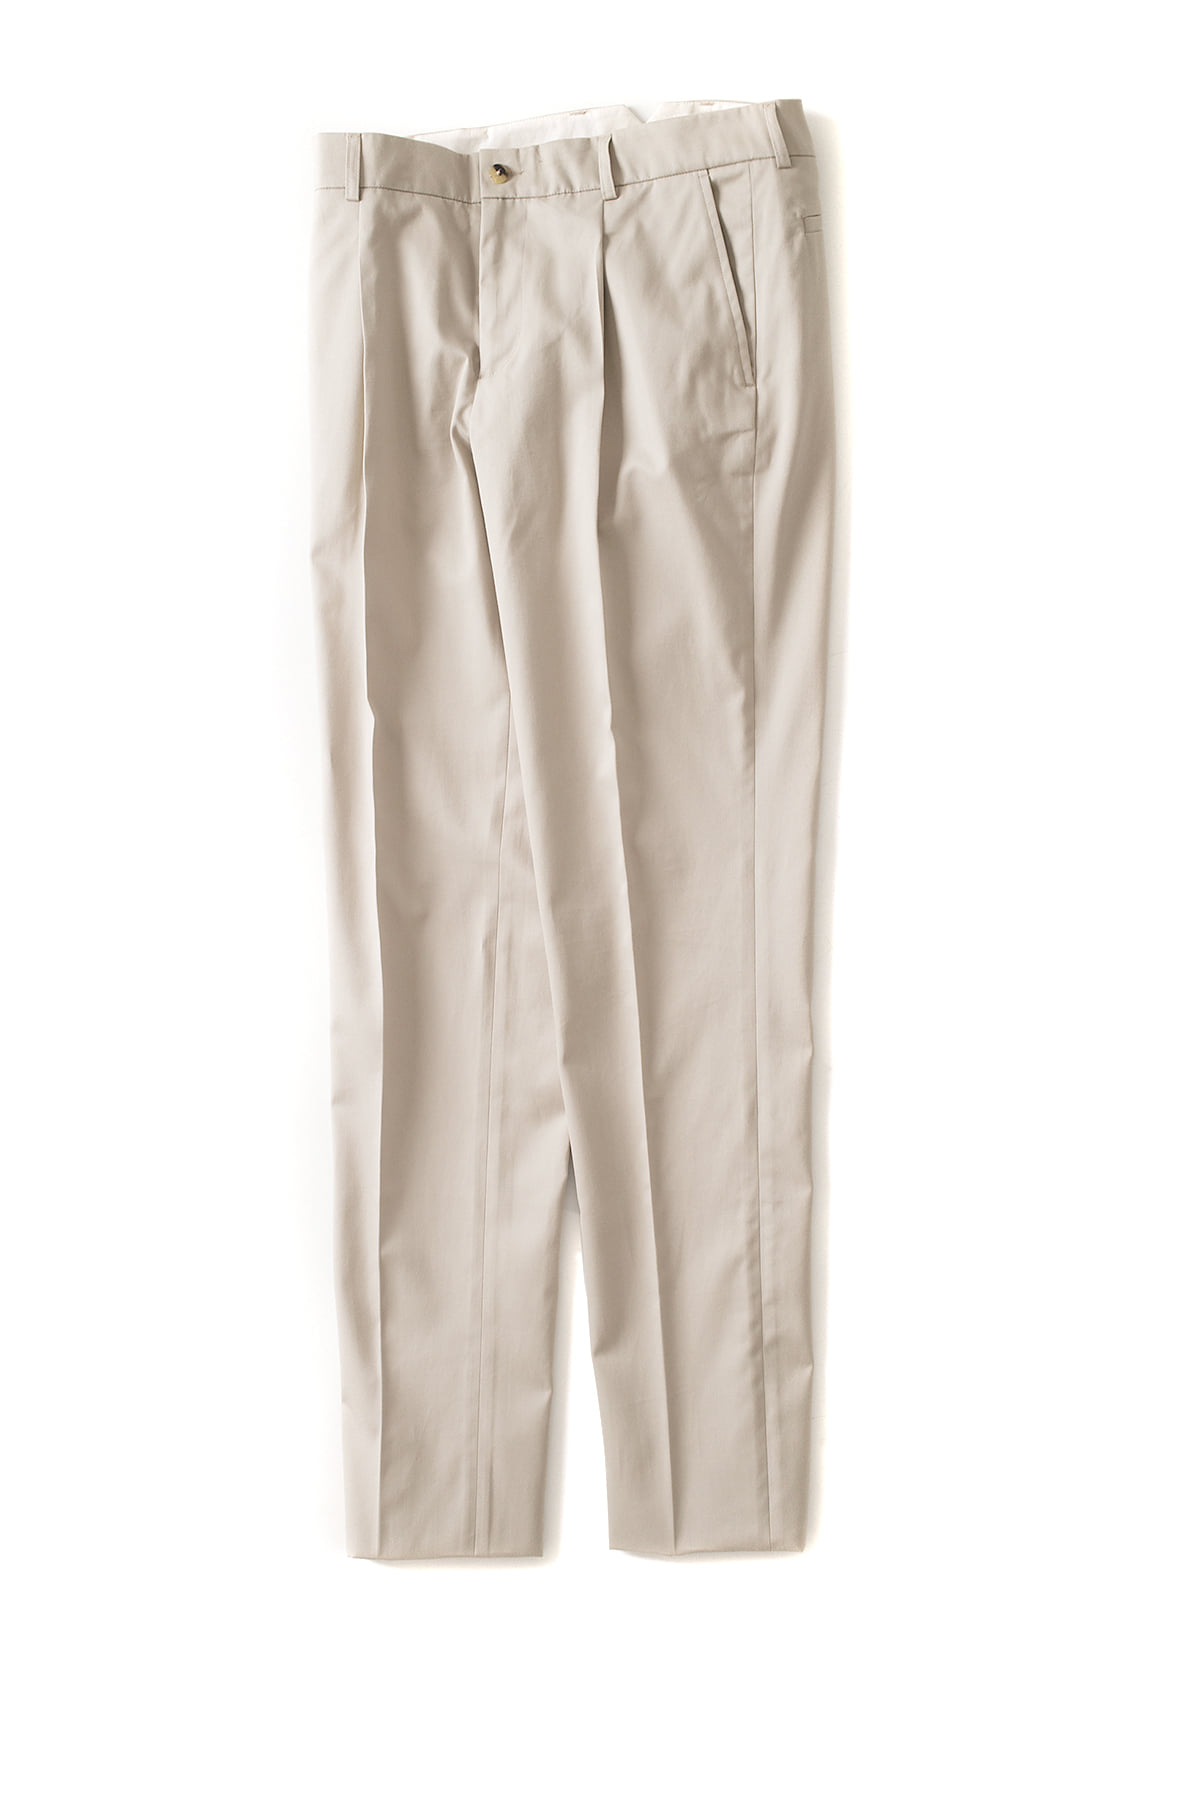 de bonne facture : One Pleat Trousers (Beige)